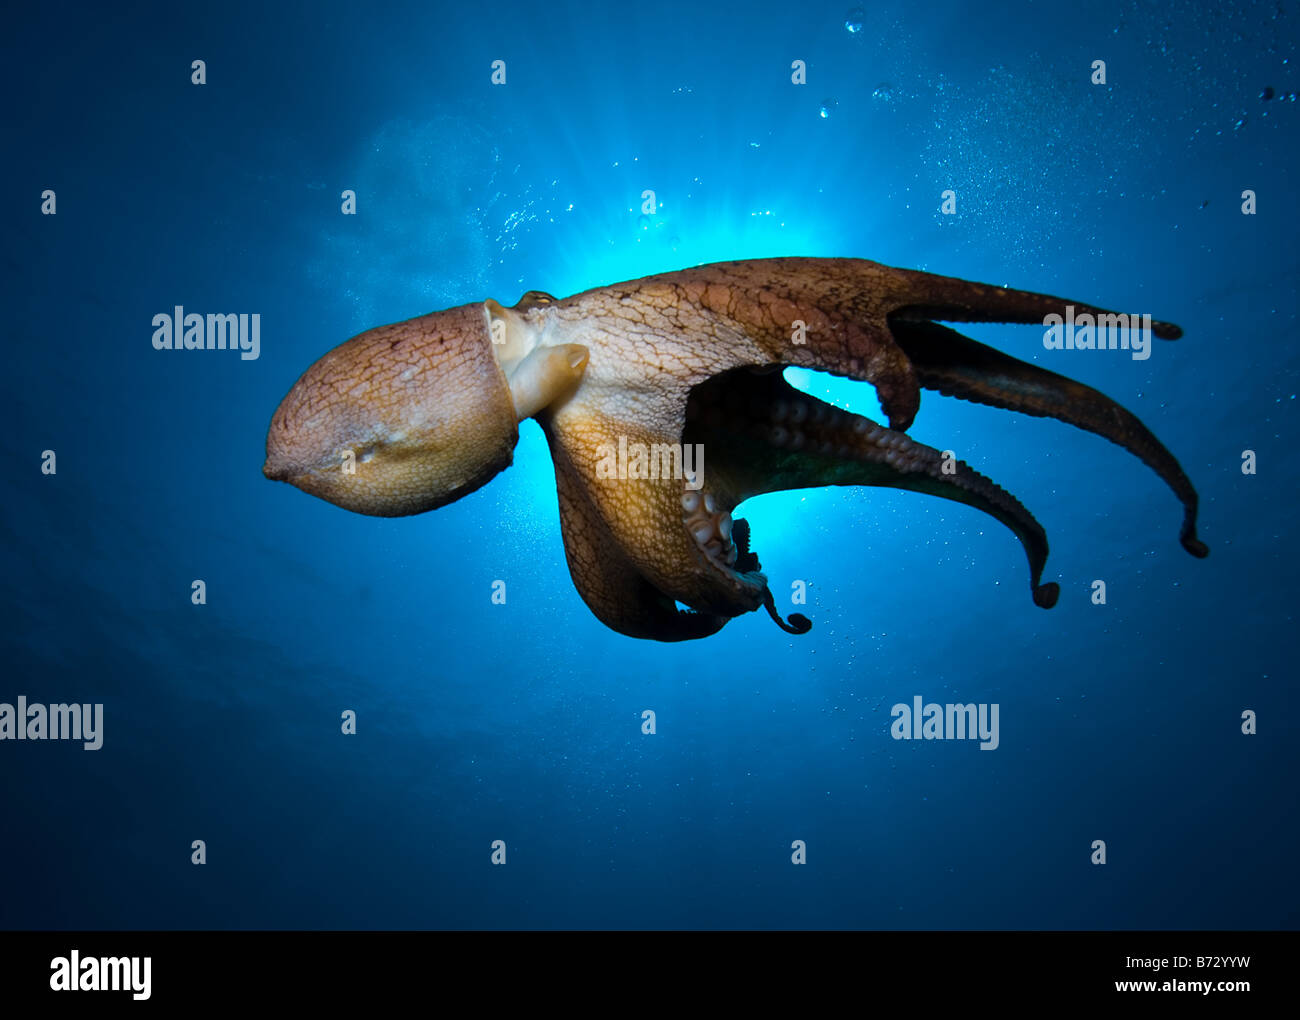 Octopus in Maui, Hawaii, cephalopod, tentacles, camouflage, ink, underwater, ocean, sea, scuba, diving - Stock Image